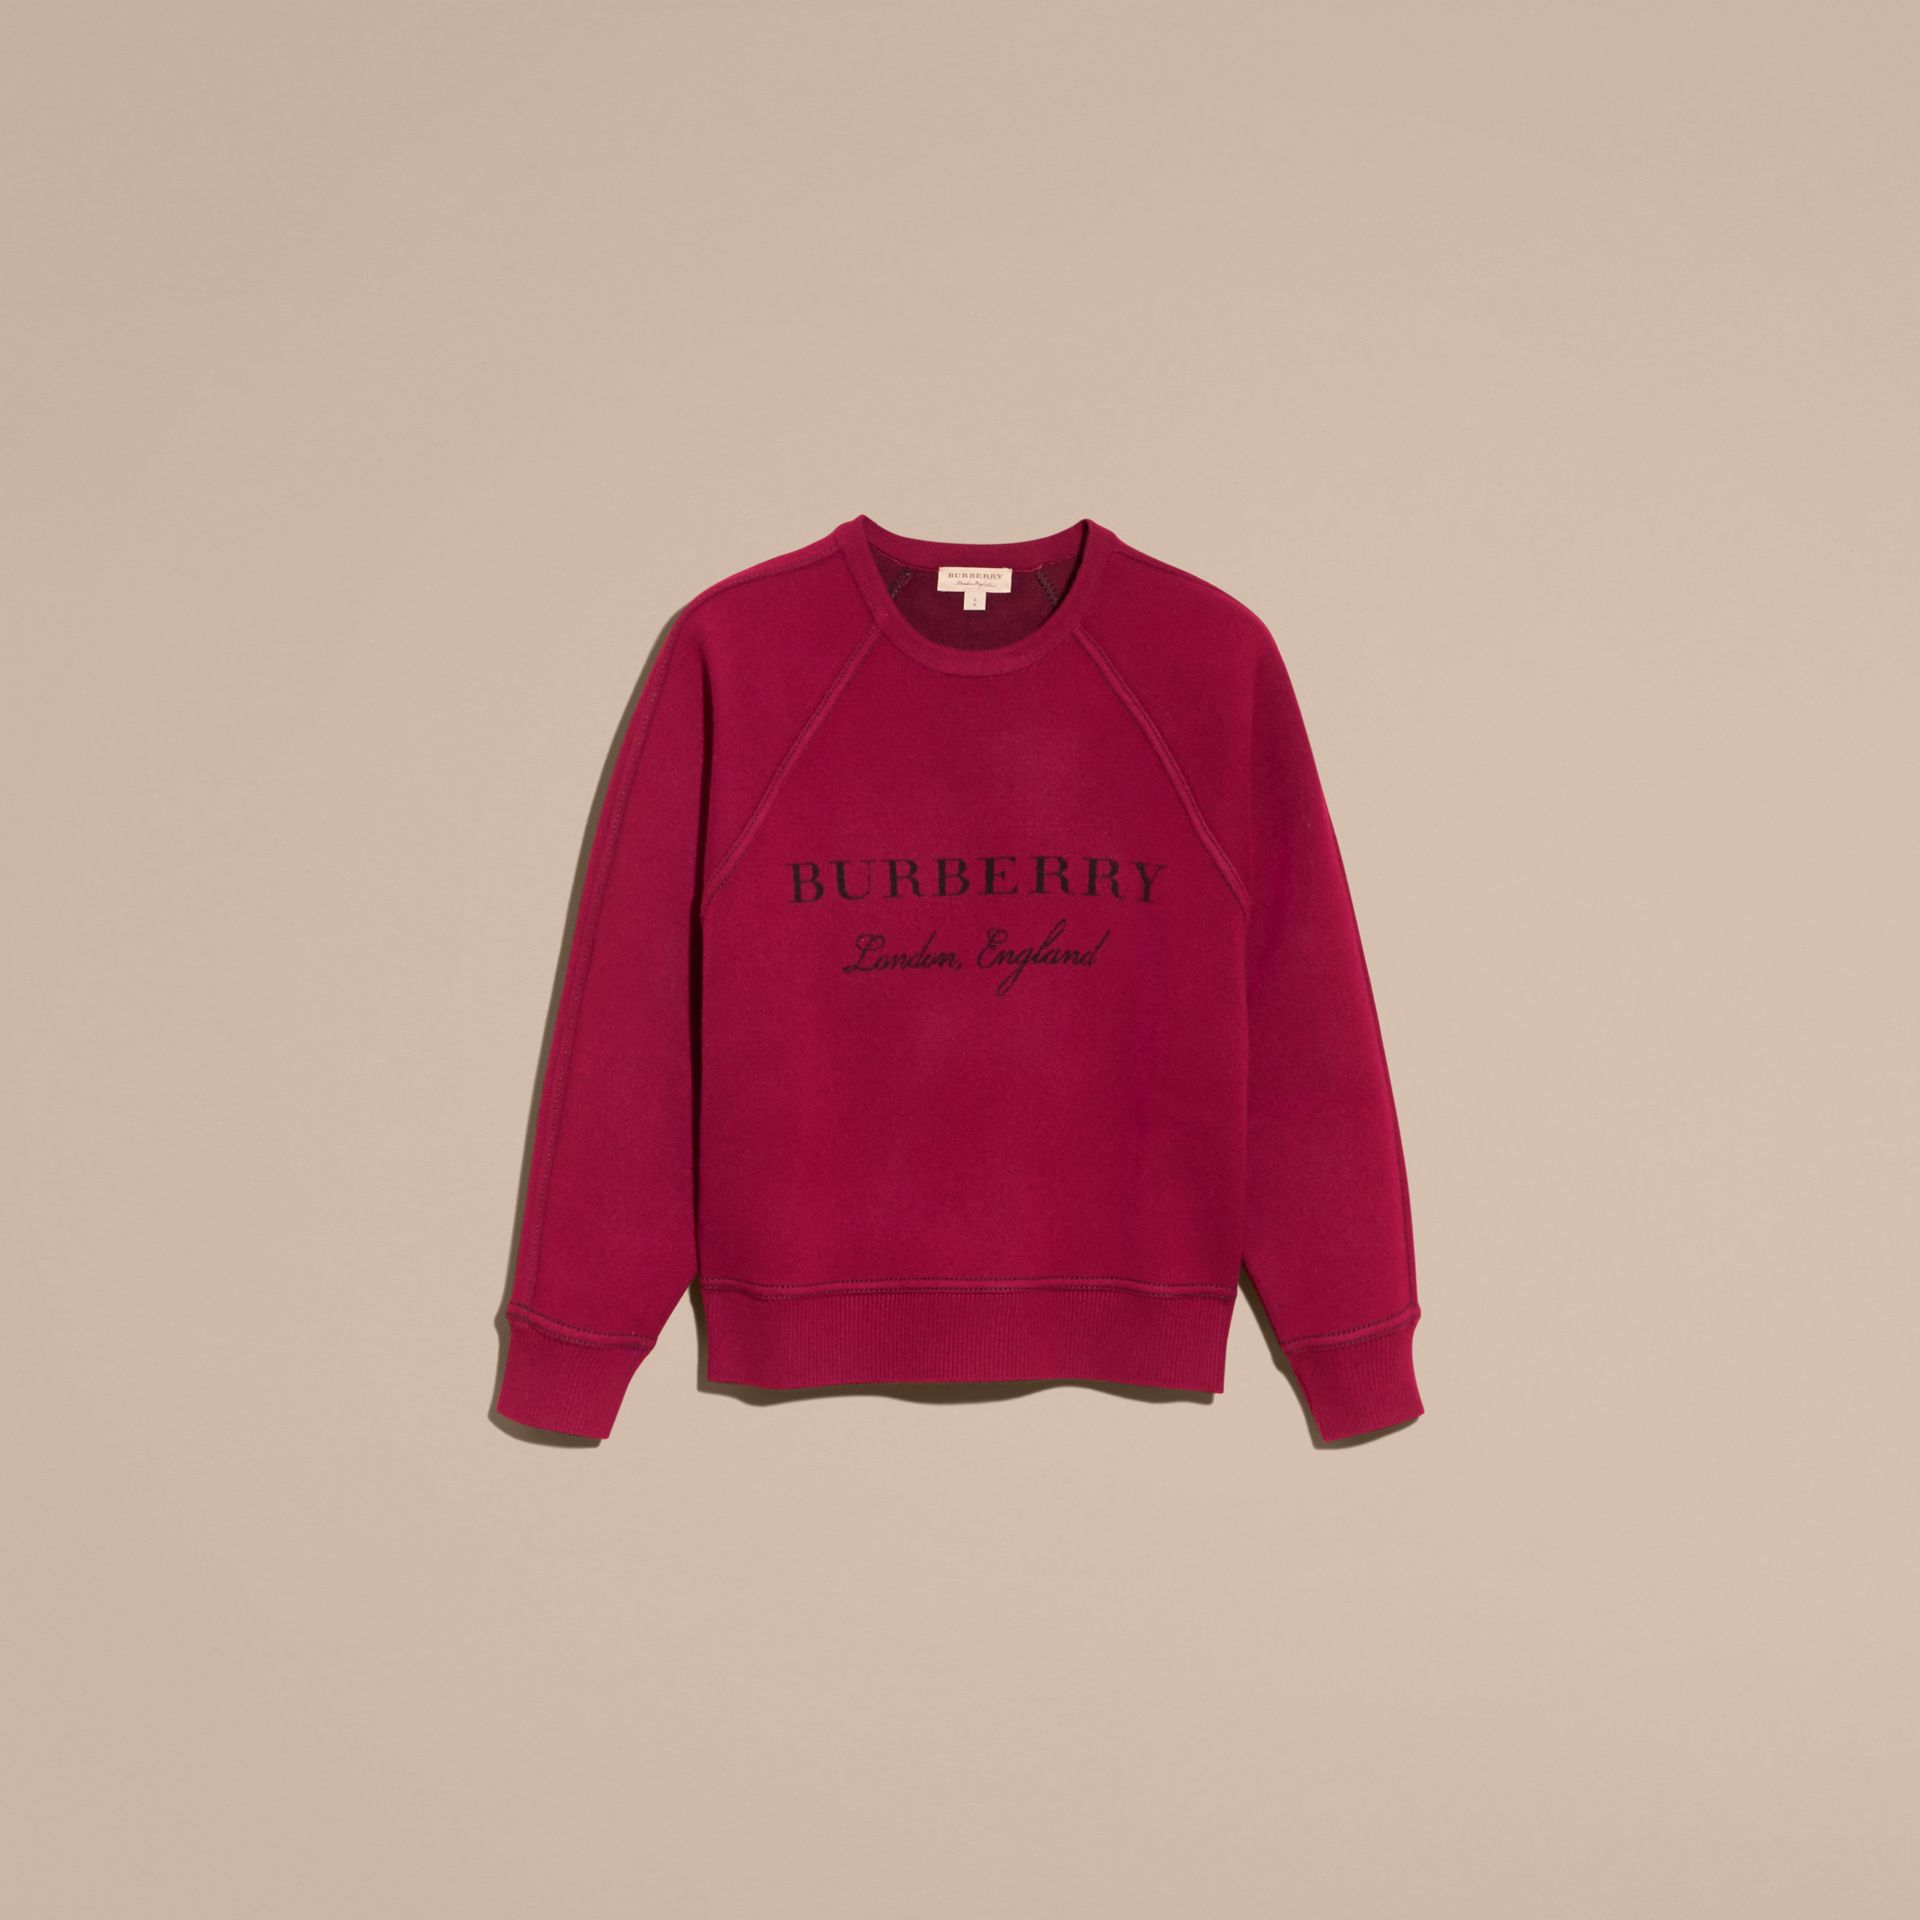 Topstitch Detail Wool Cashmere Blend Sweatshirt Burgundy - gallery image 4